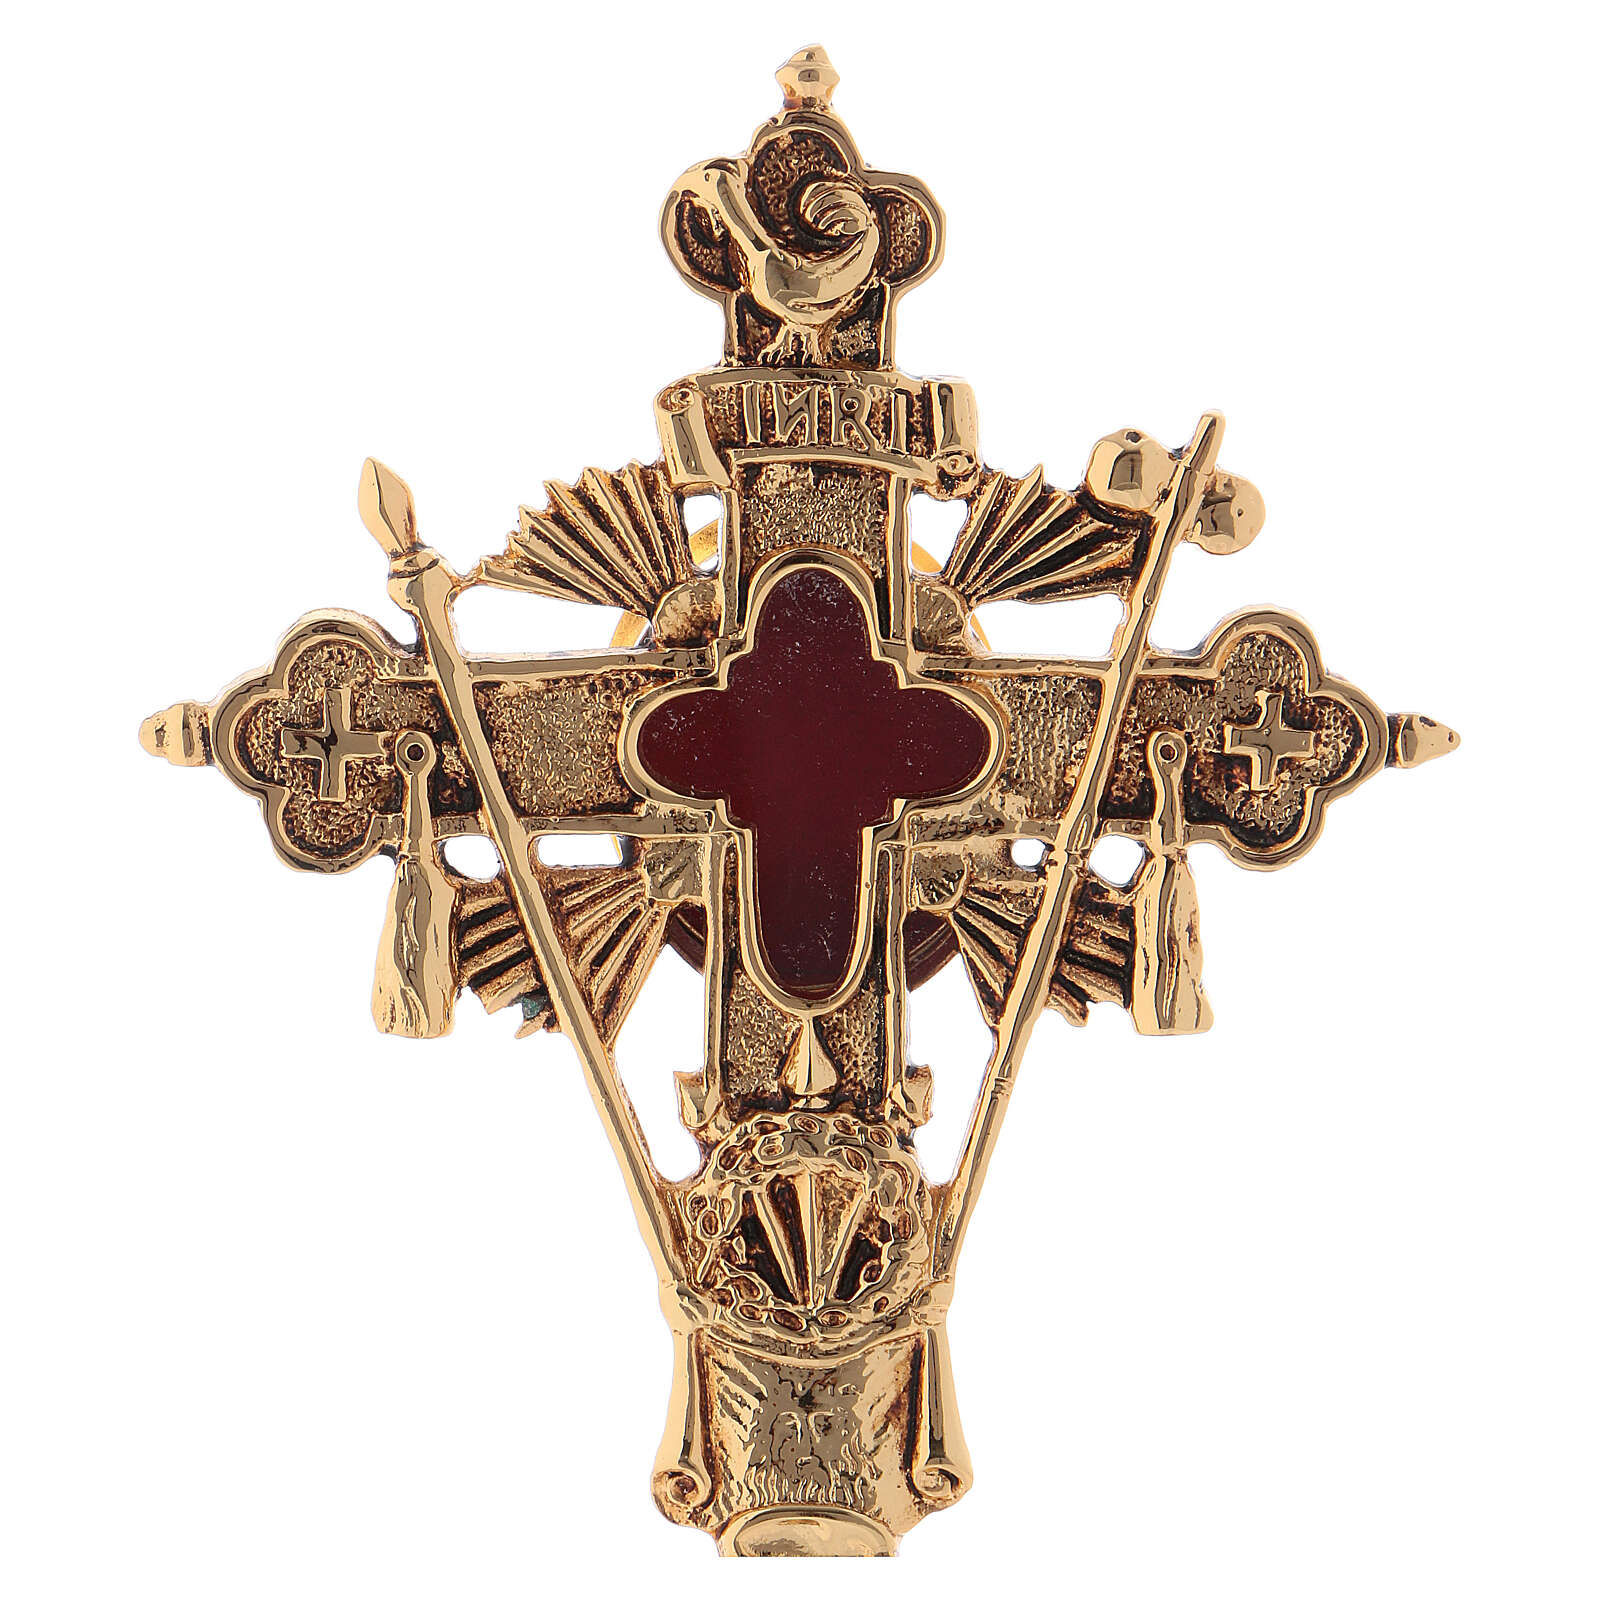 Gold plated brass reliquary 9 in 4